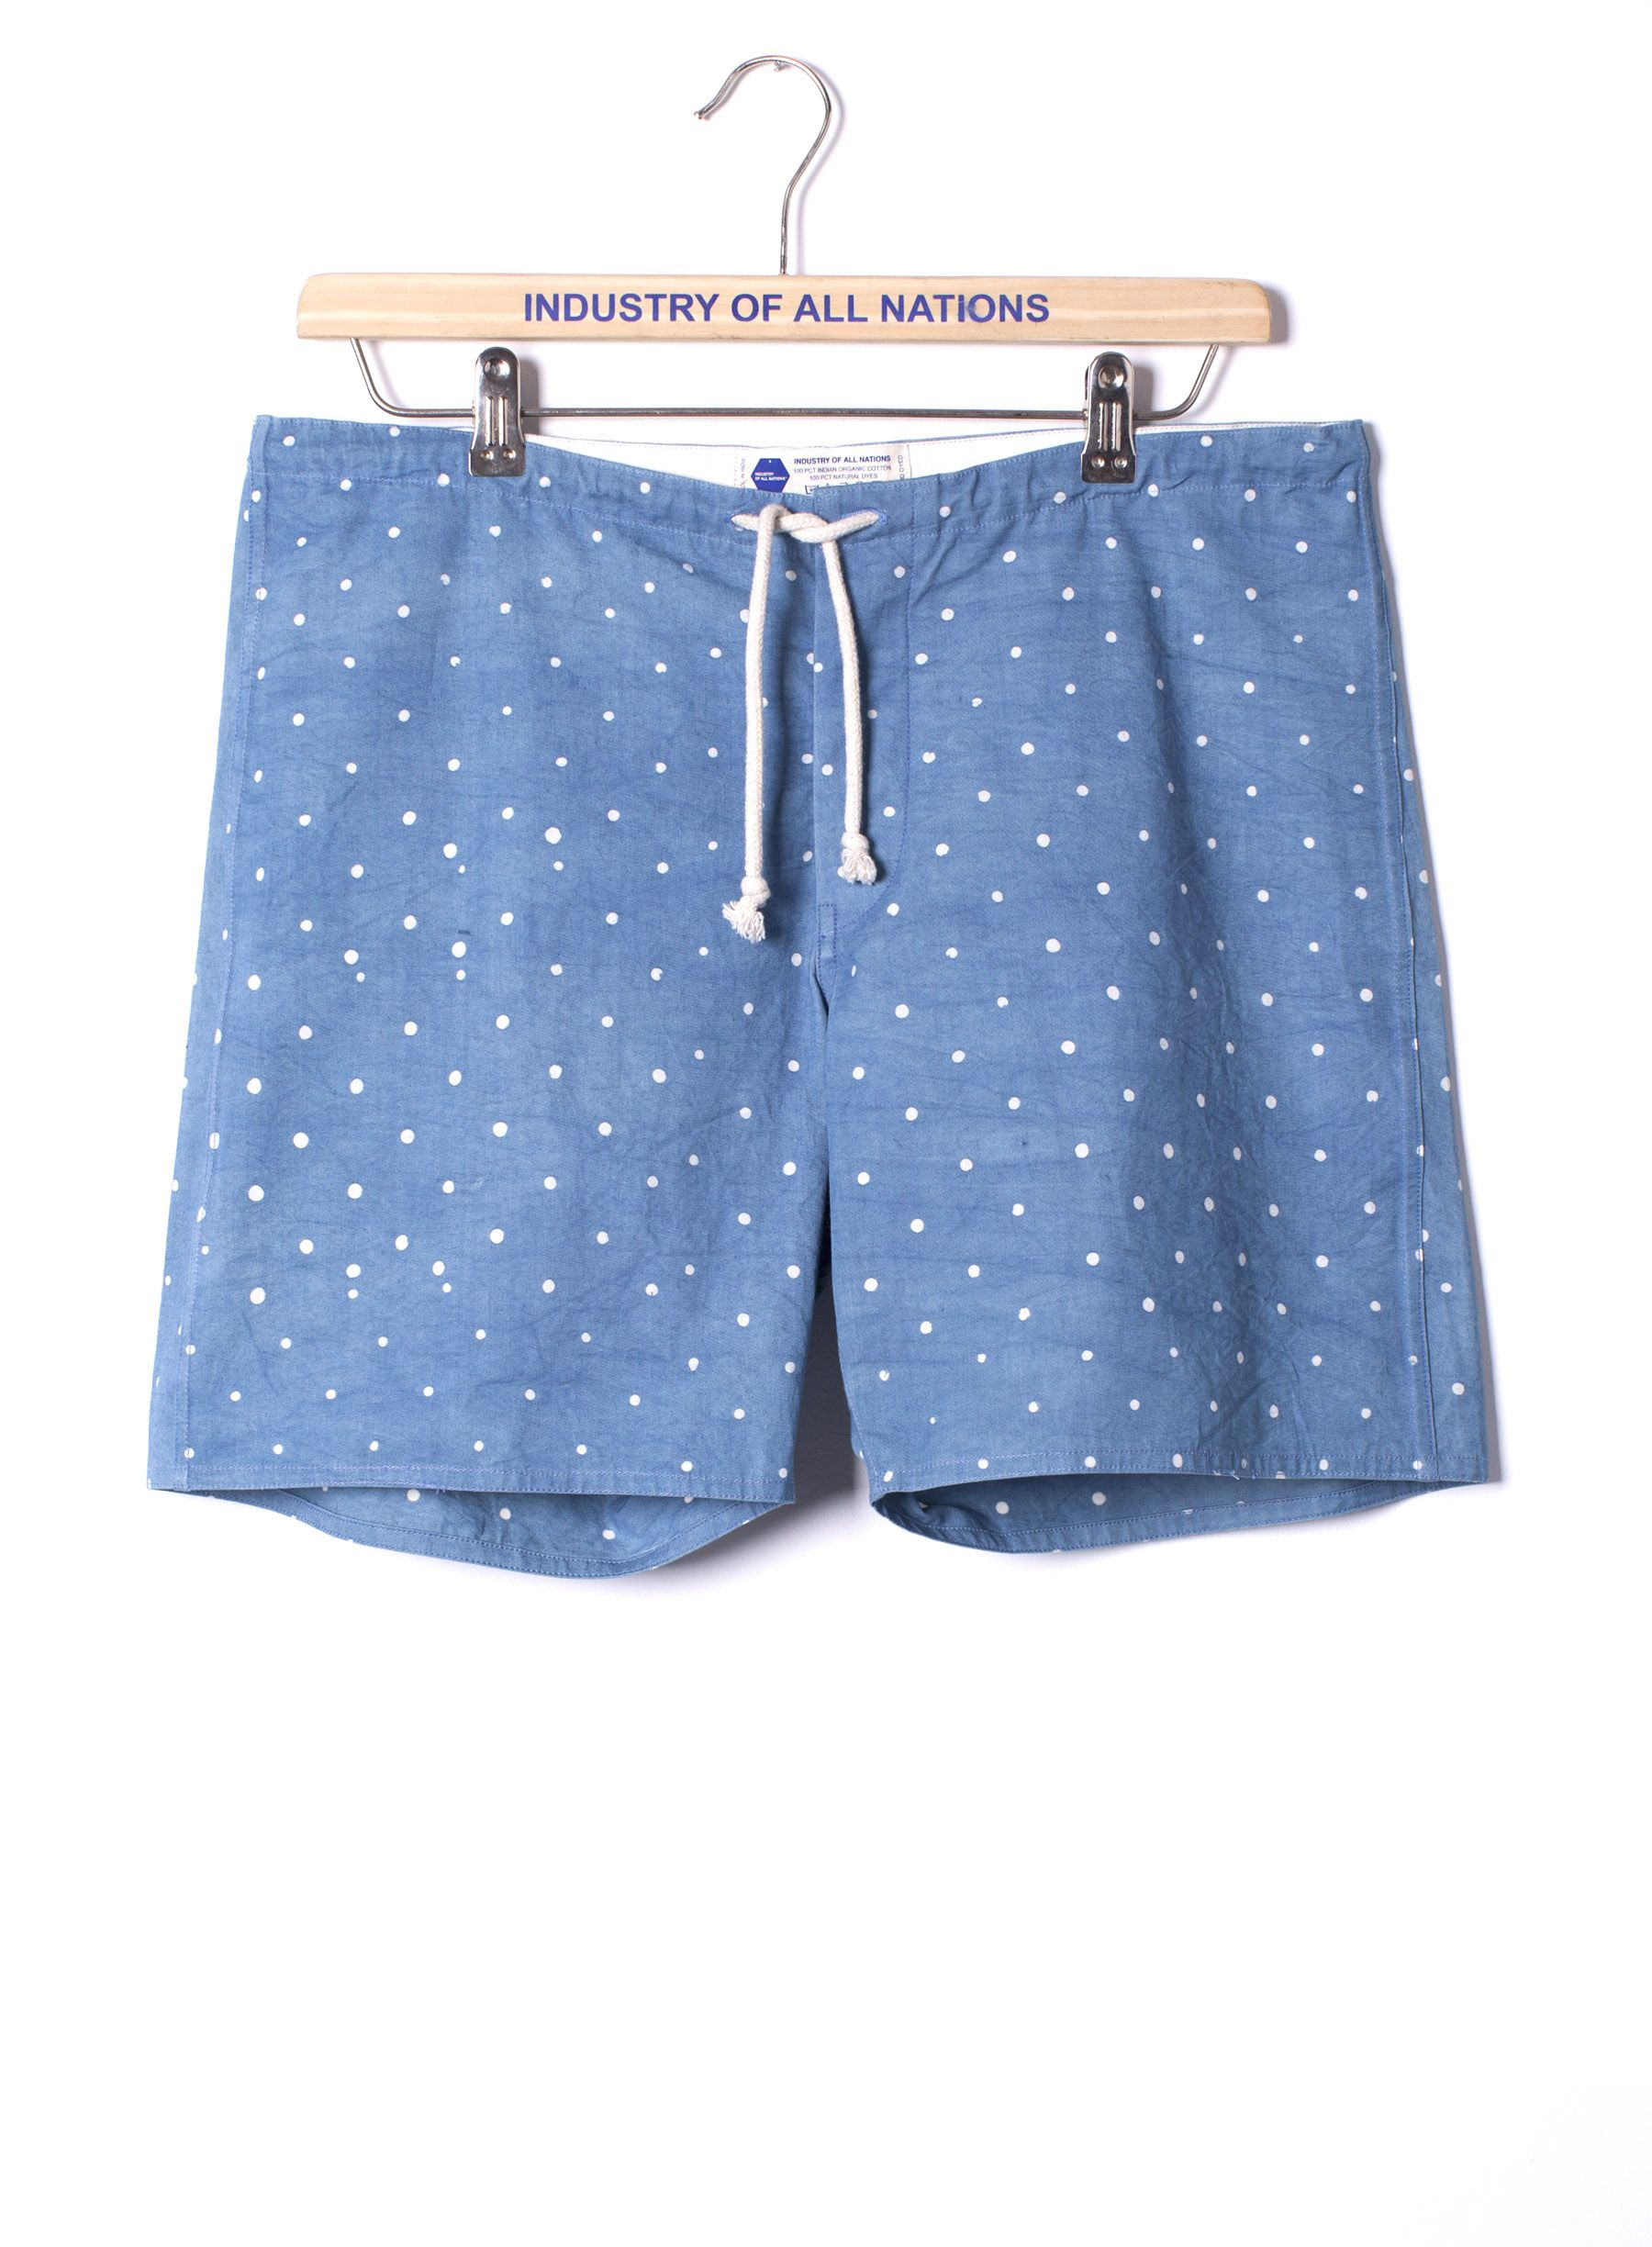 Madras Batik Boardshorts at INDUSTRY OF ALL NATIONS™ in 6 DIPS INDIGO in XS, S, M, L, XL